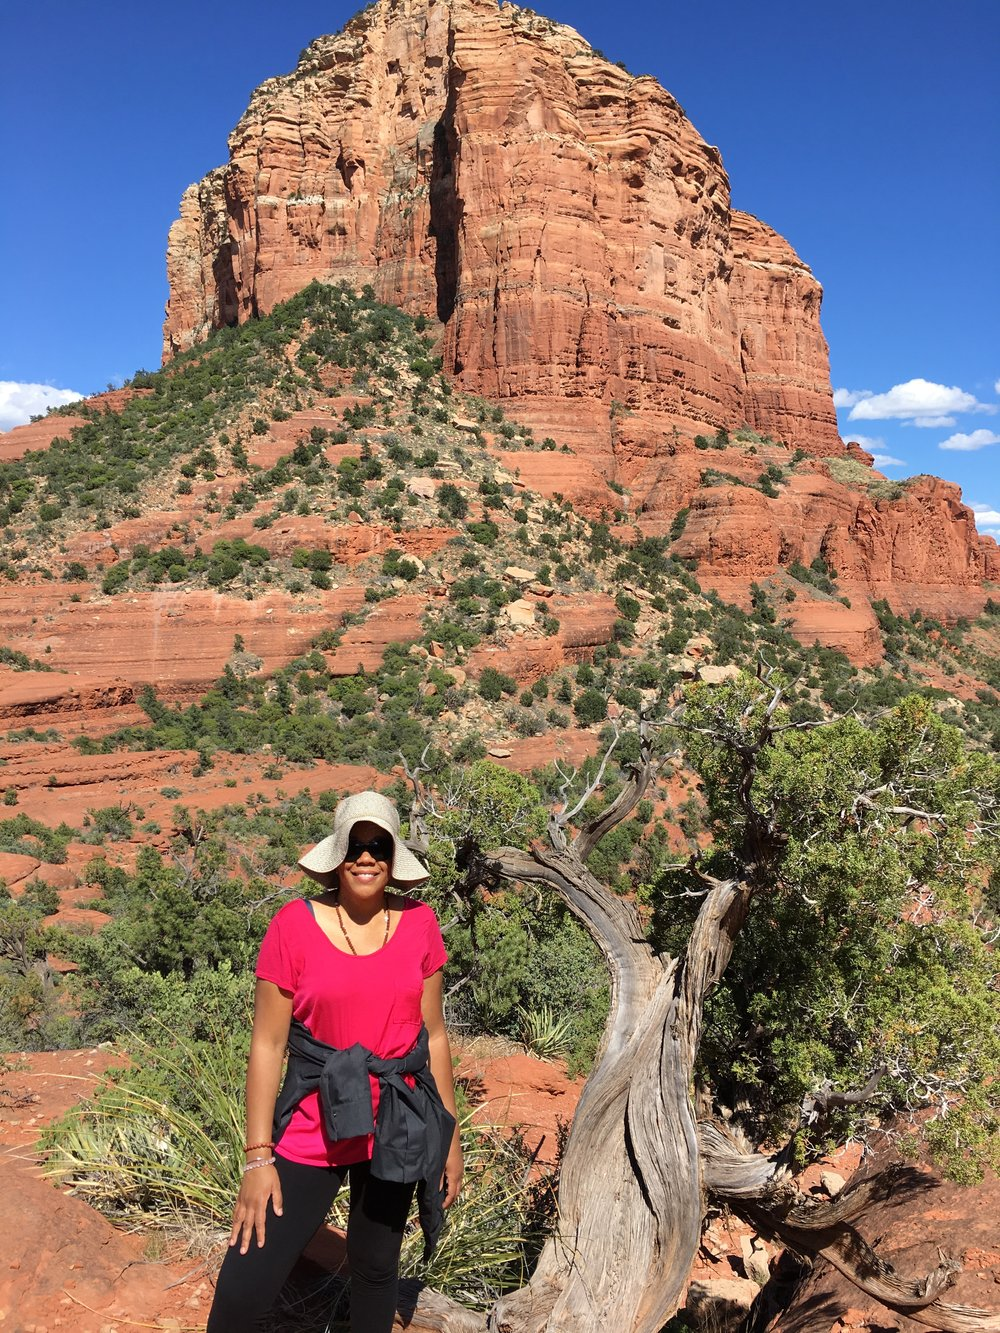 At bell Rock Vortex in Sedona, AZ